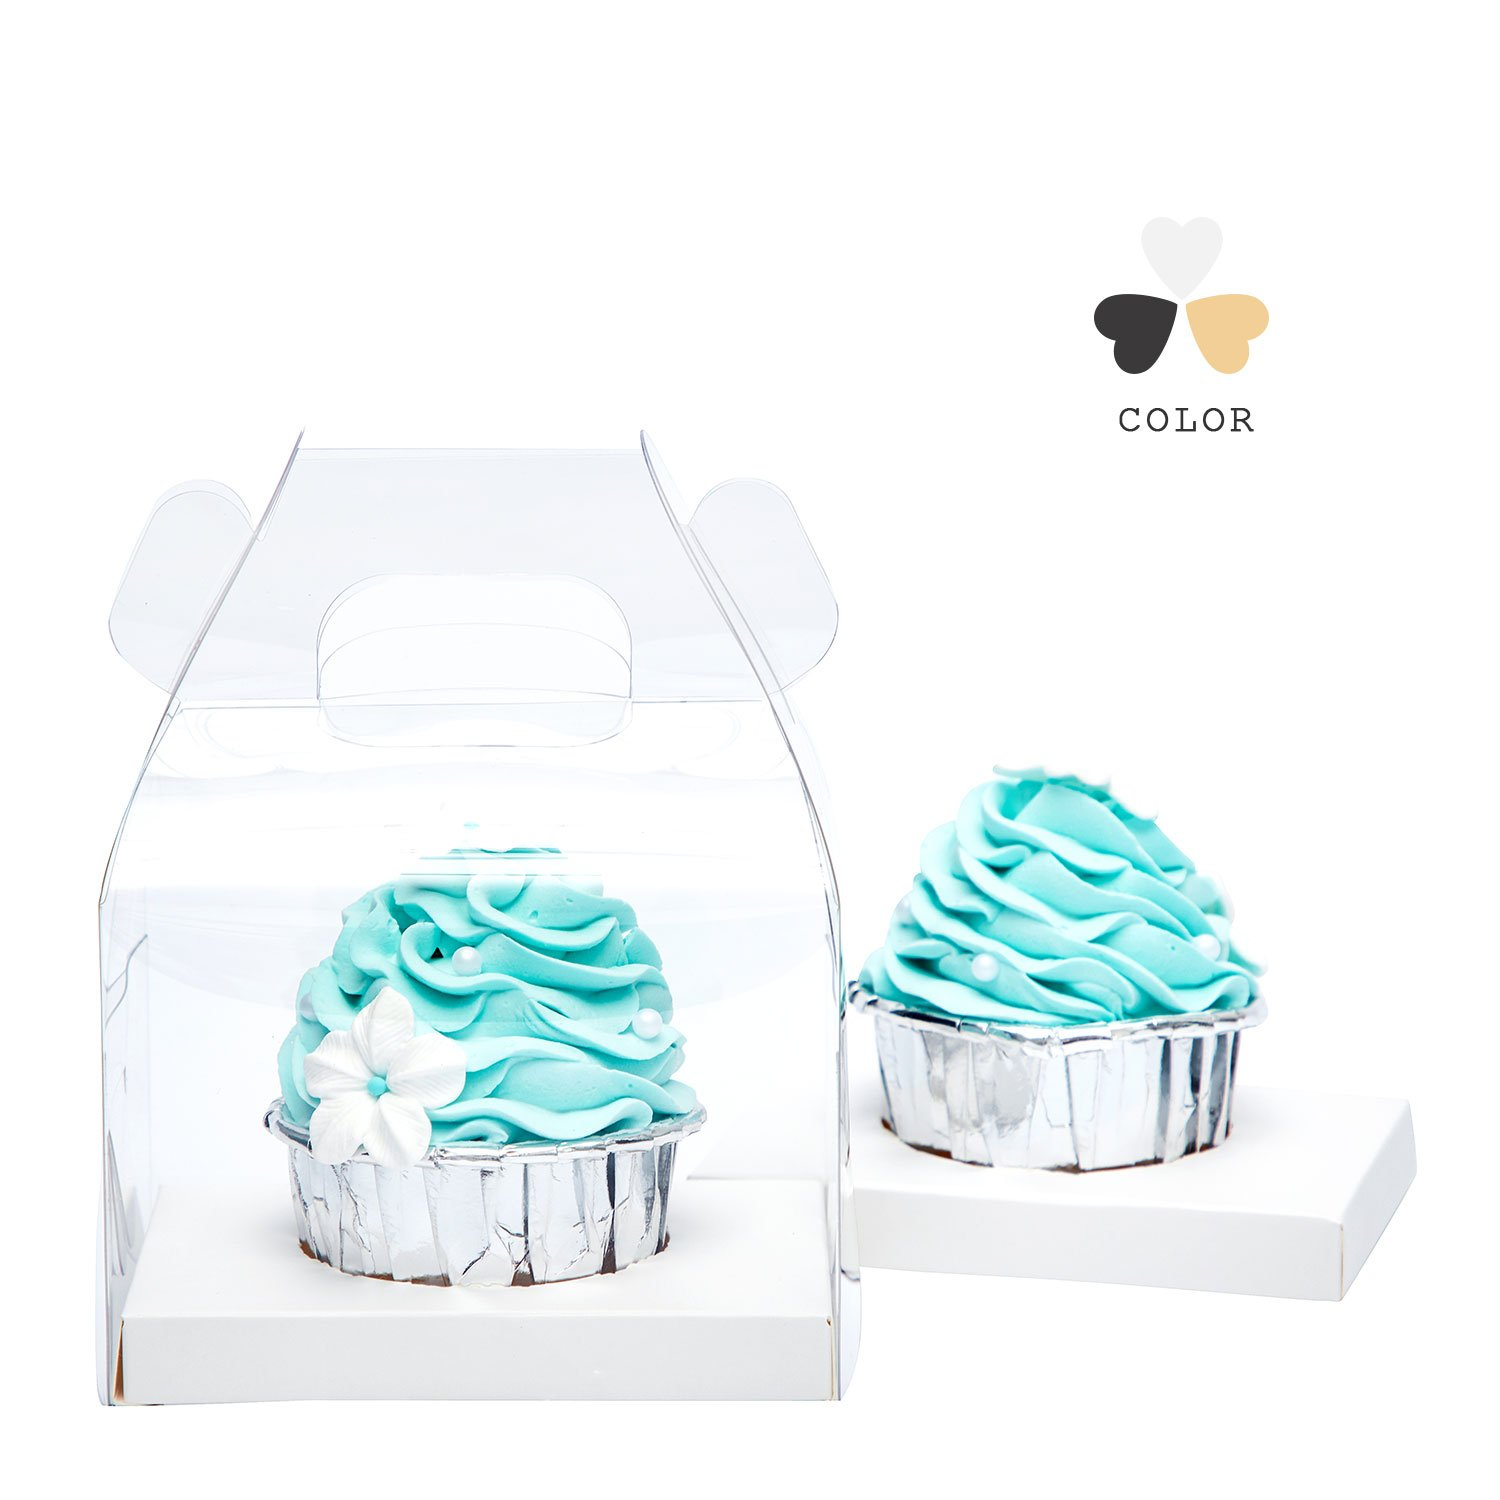 Yotruth Clear Single Cupcake Boxes With Handle and White Insert 20 Pack For Sweet Treat Box by yotruth (Image #3)